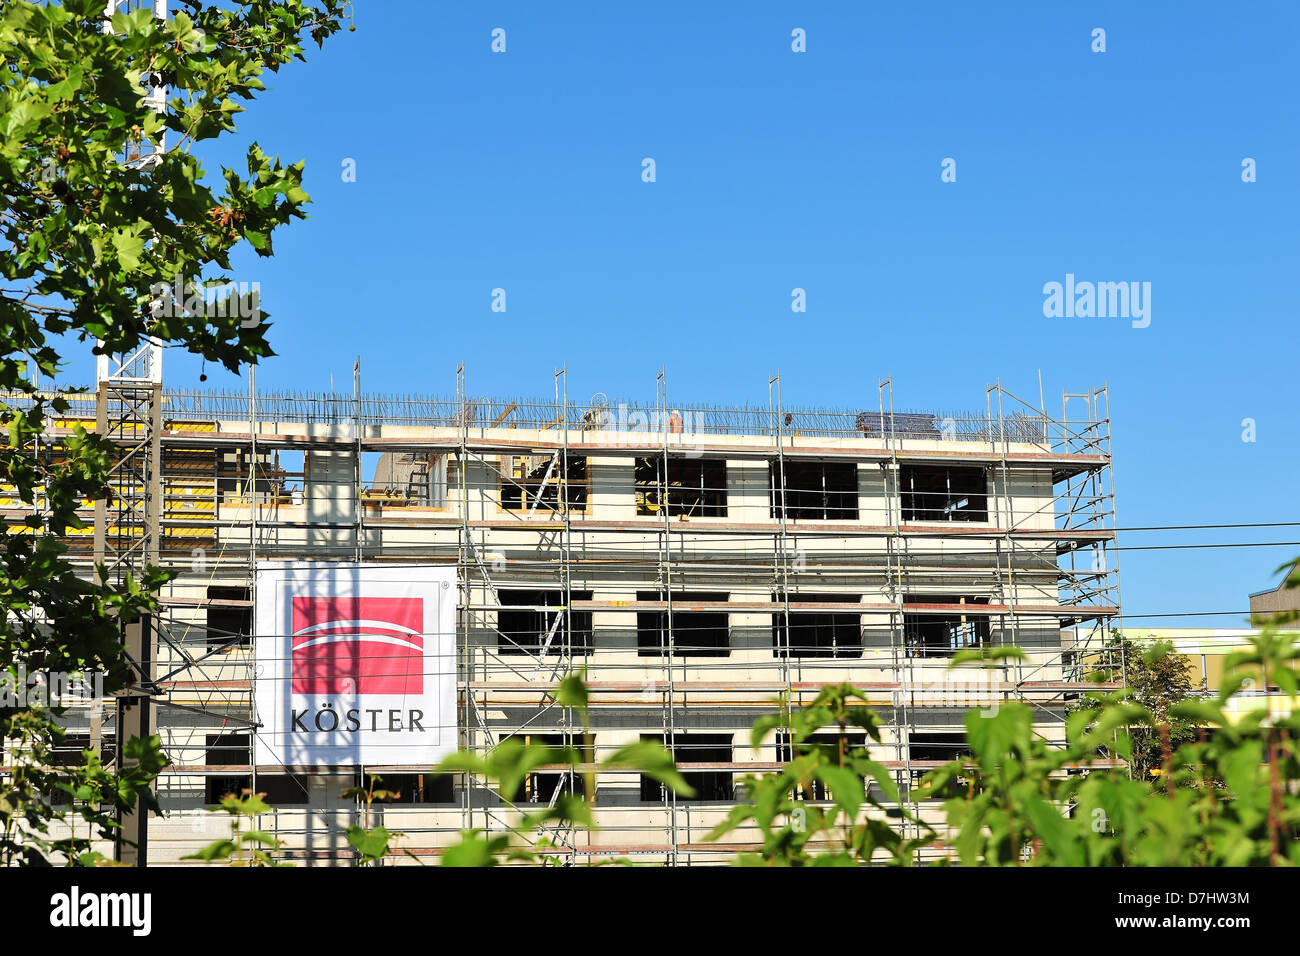 Construction Company Names Stock Photos & Construction